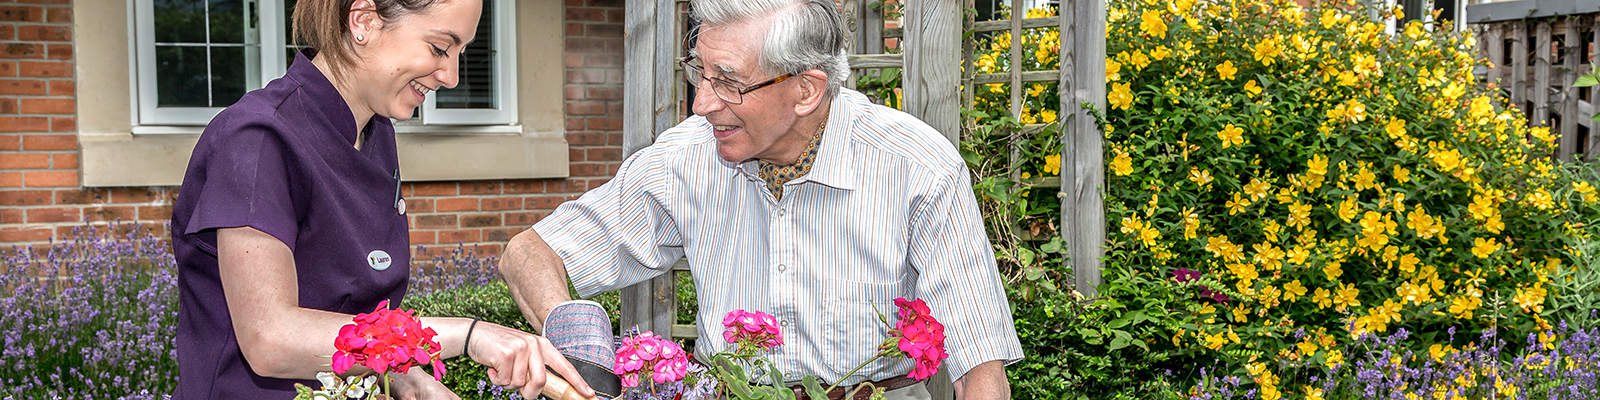 Photograph of care home worker helping elderly man pot some plants